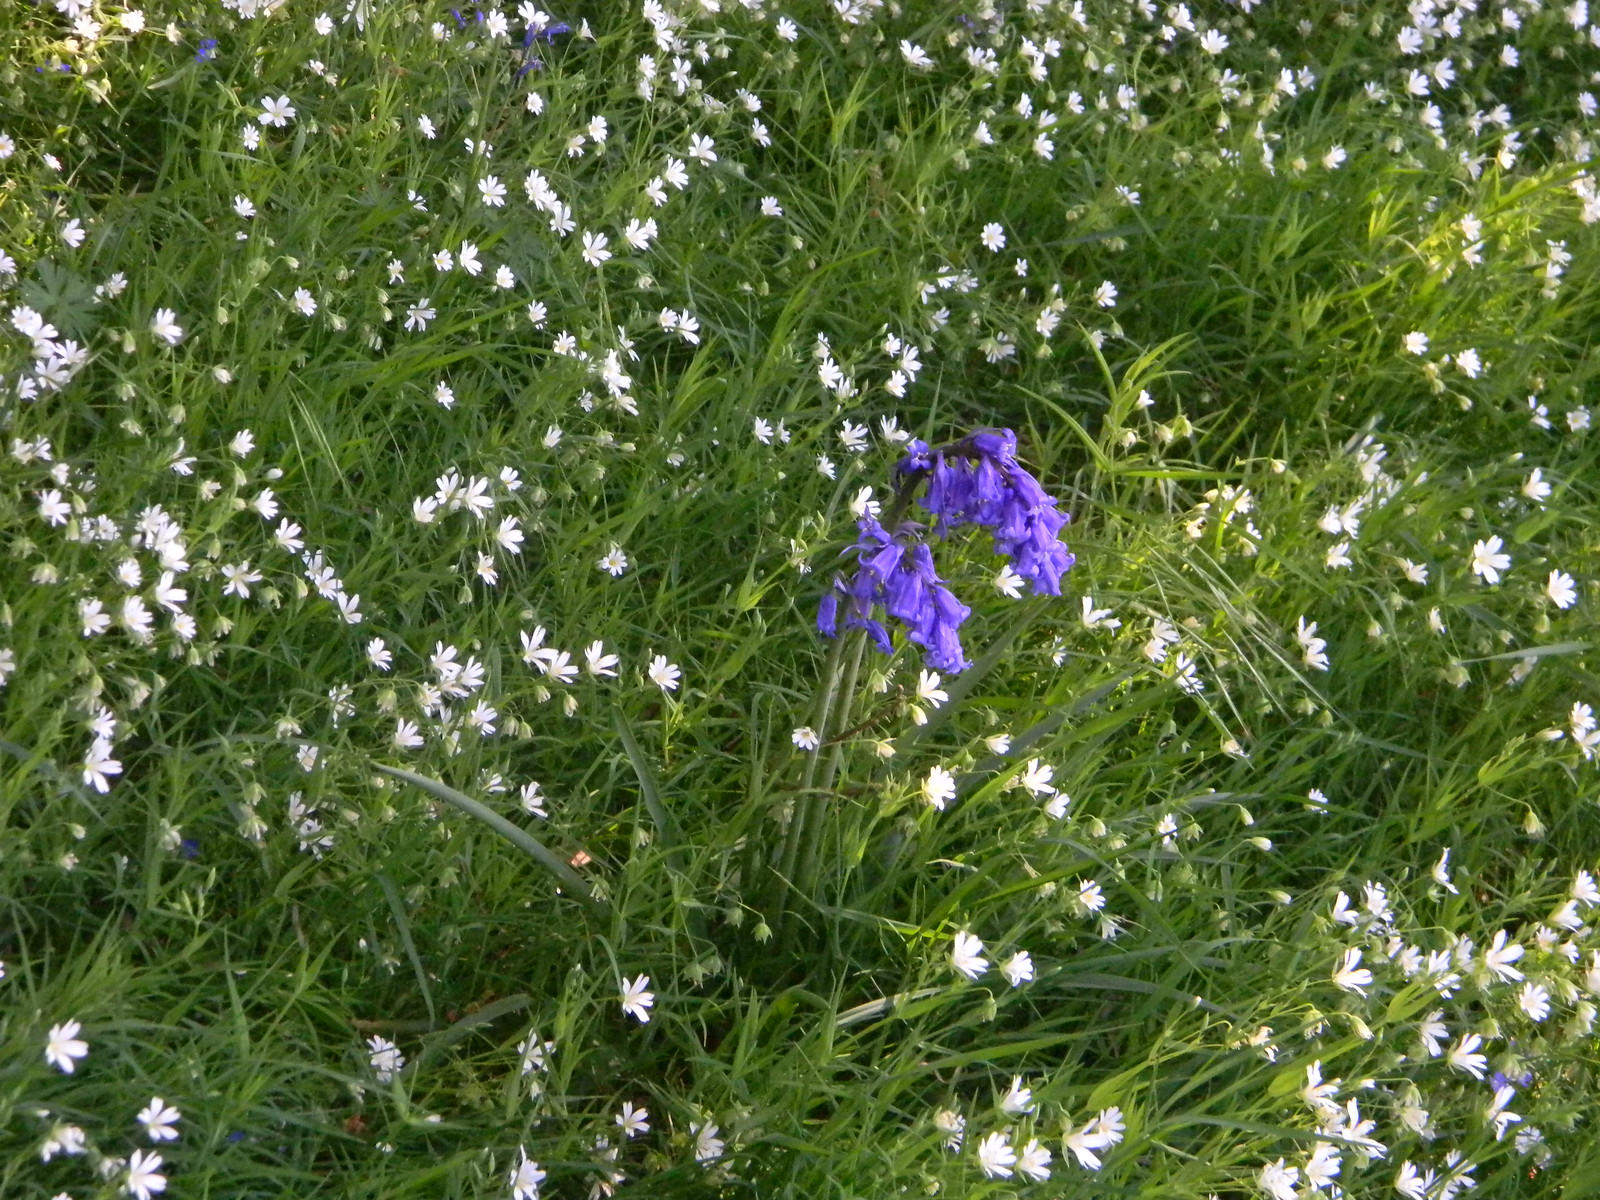 Bluebells in stitchwort Ockley to Warnham